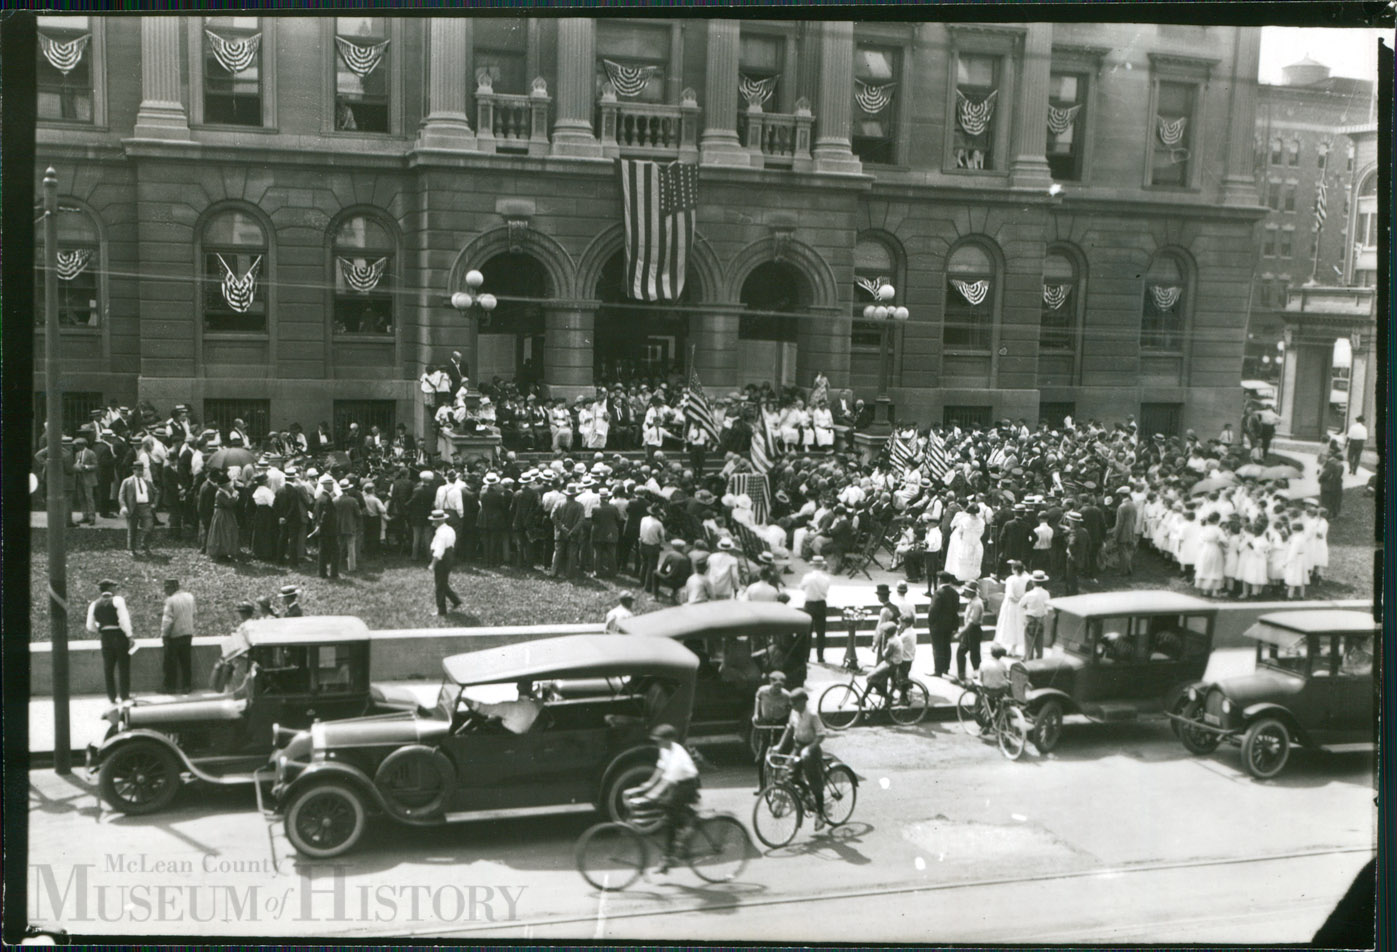 Lincoln Marker Dedication, June 1922